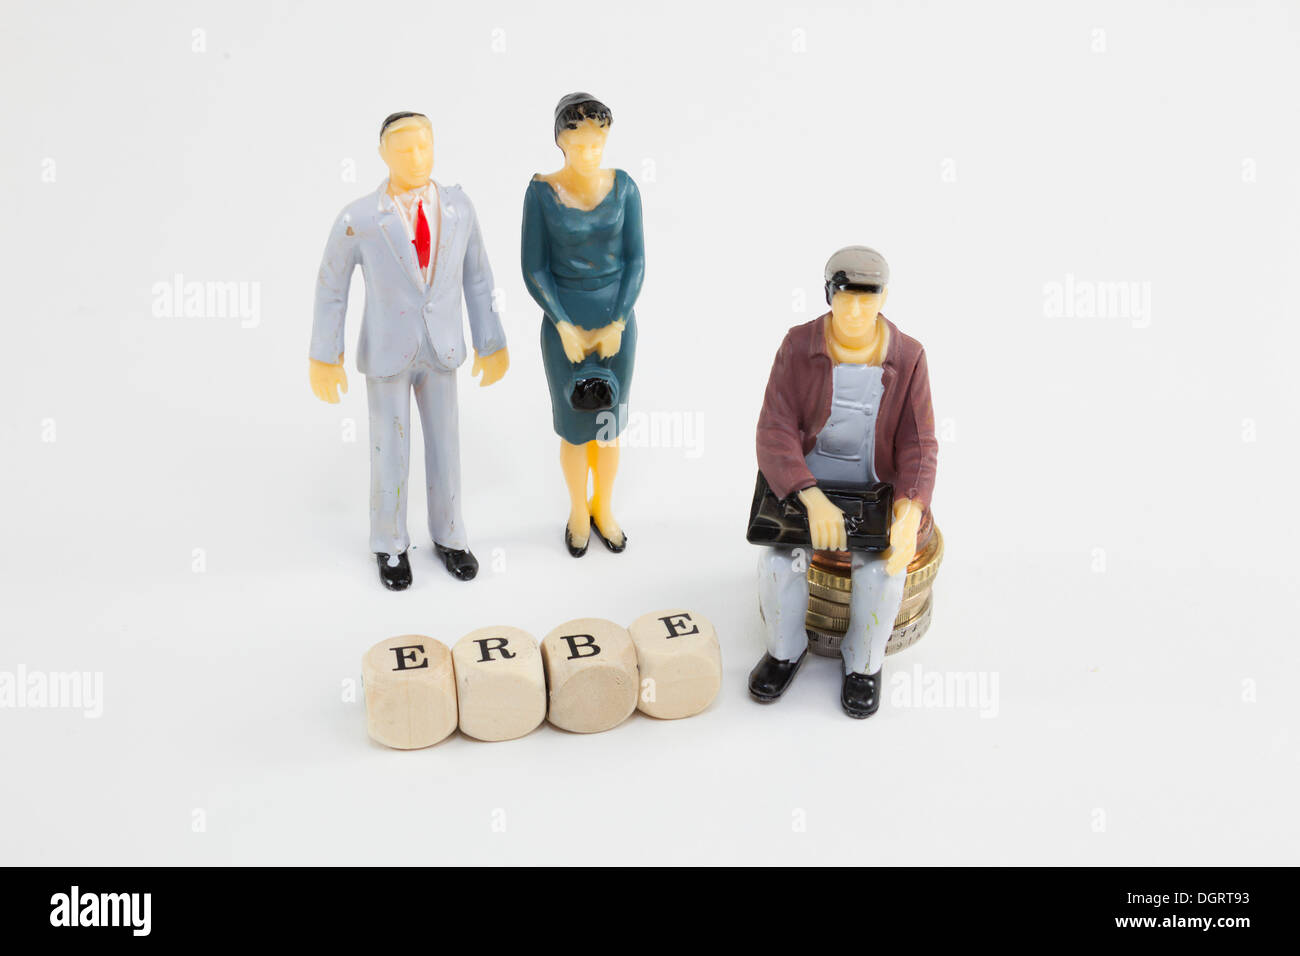 Miniature figures, letter cubes forming the word 'Erbe', German for 'inheritance', symbolic image - Stock Image